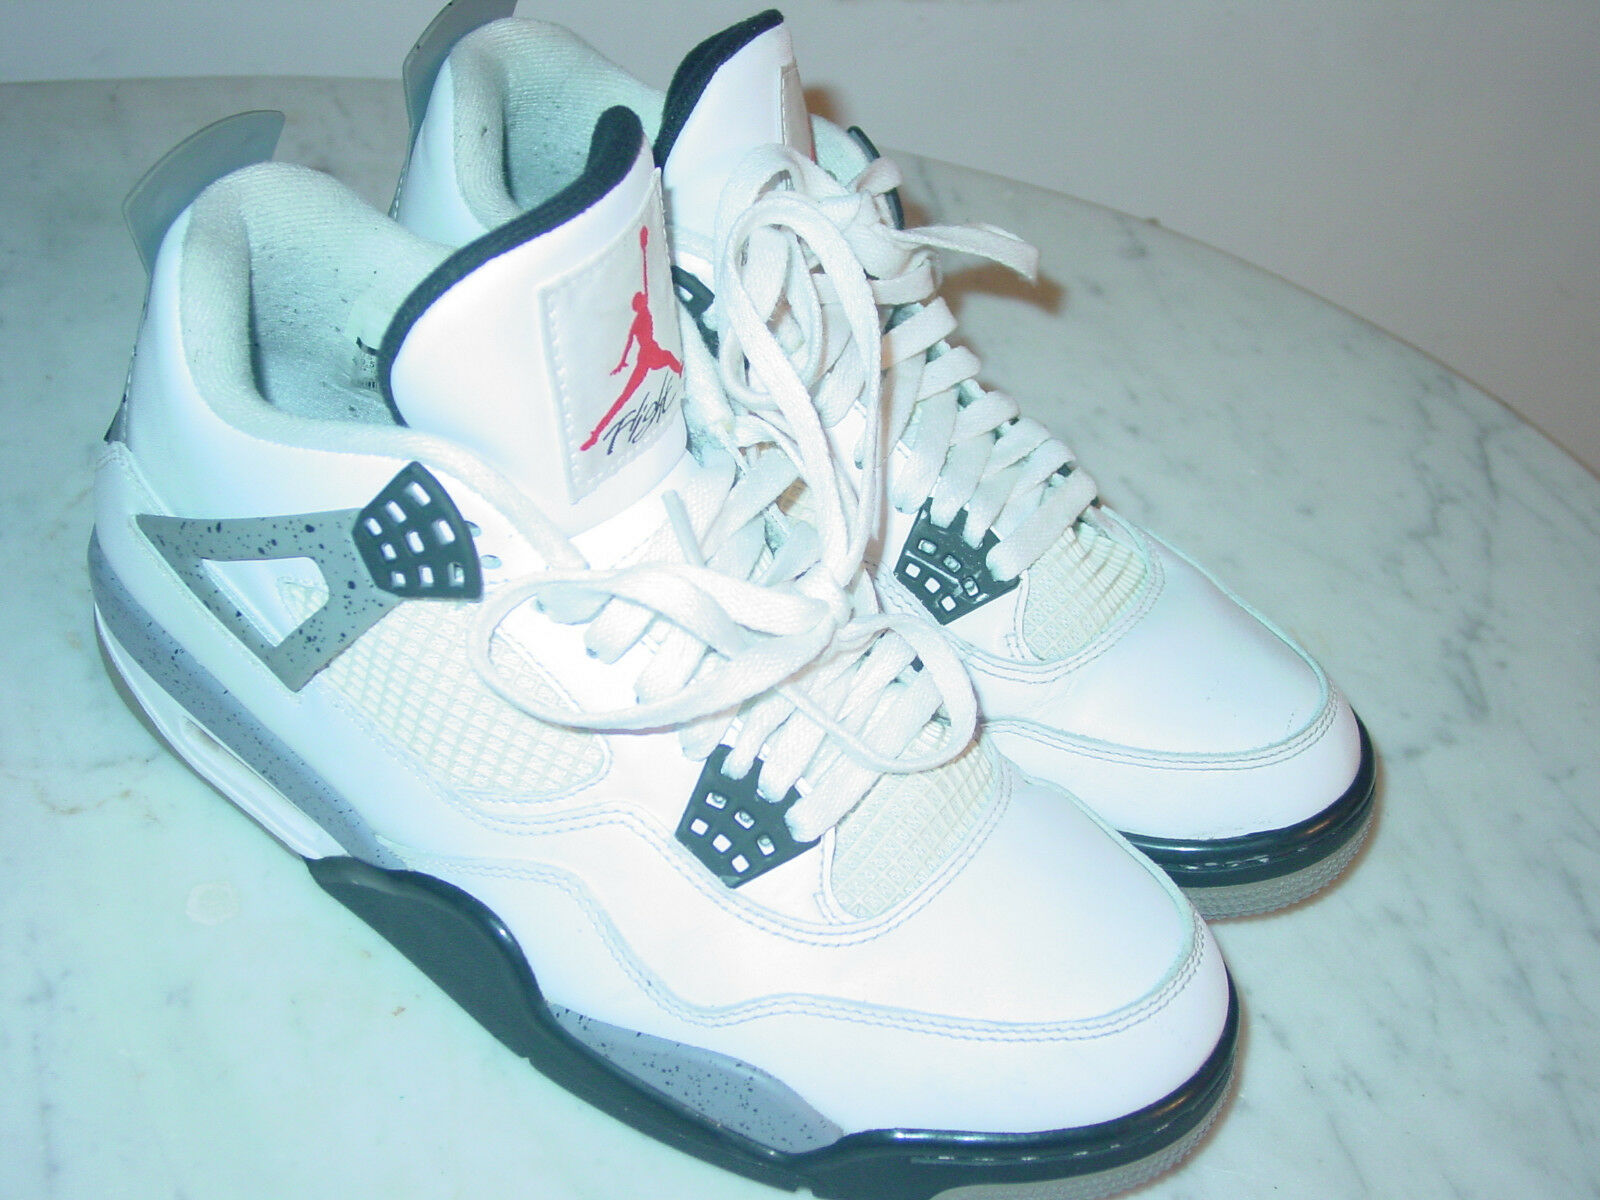 2011 Nike Air Jordan Retro 4  2012 Release  White shoes  Size 9.5 Sold As Is